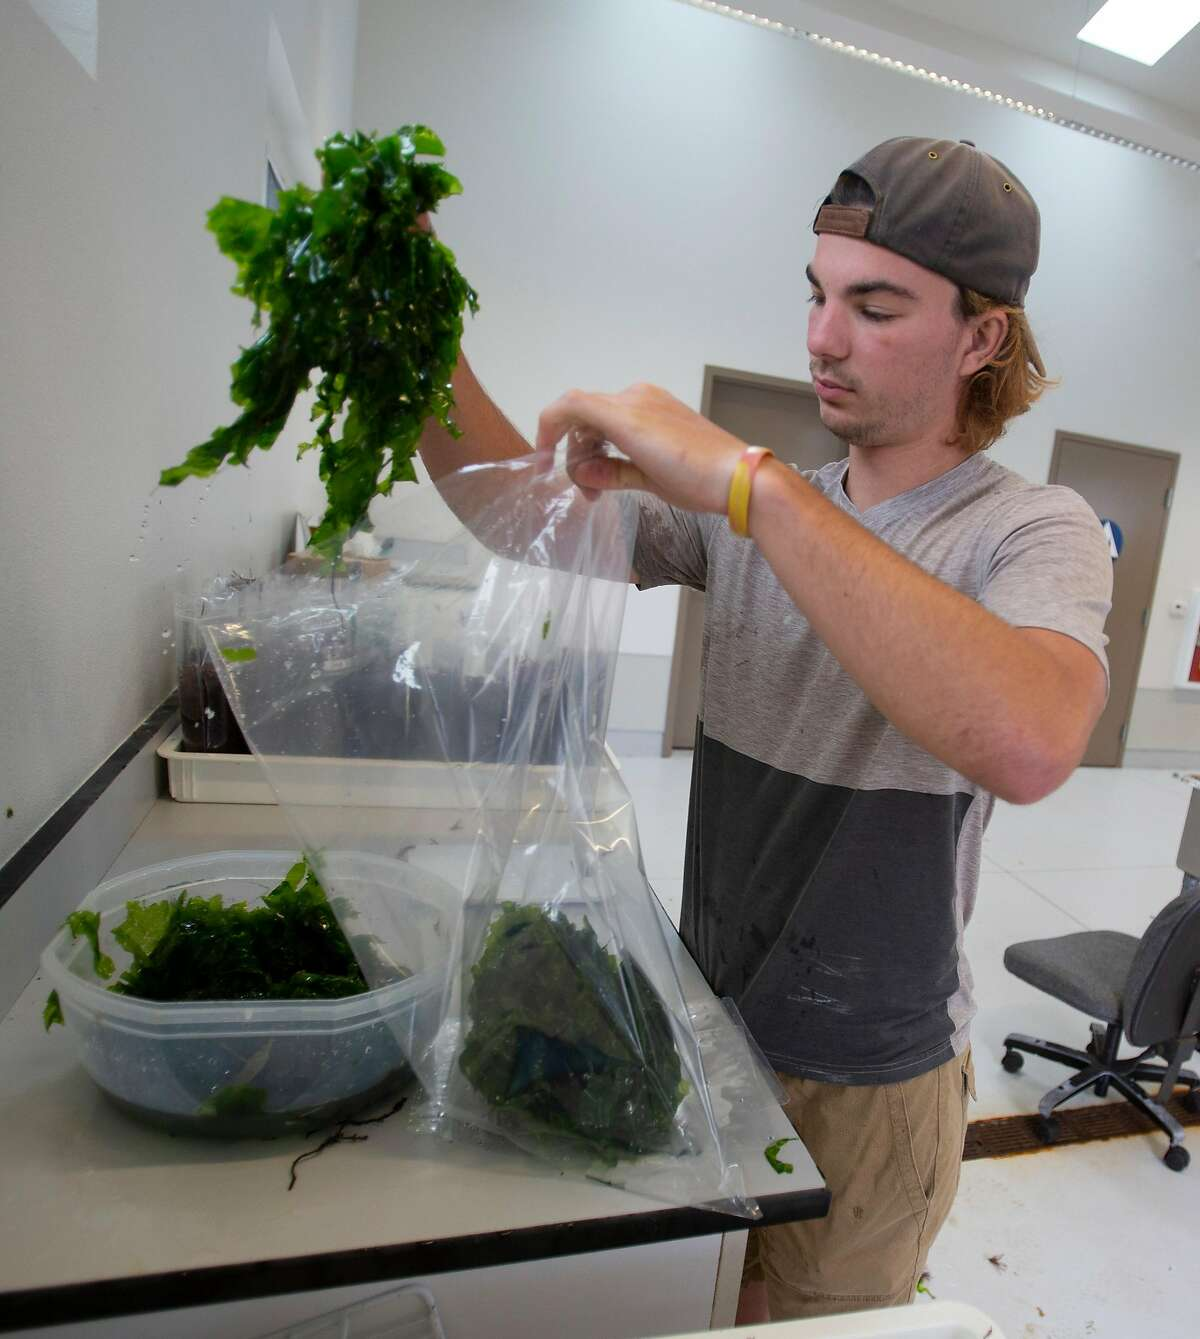 Employee Matthew Elliott packages Green sea lettuce on Thursday, 8/23, 2018 in Moss Landing, California at Monterey Bay Seaweeds where Michael Graham farms various types of the plant to sell to upscale restaurants in Monterey and the San Francisco Bay Area.